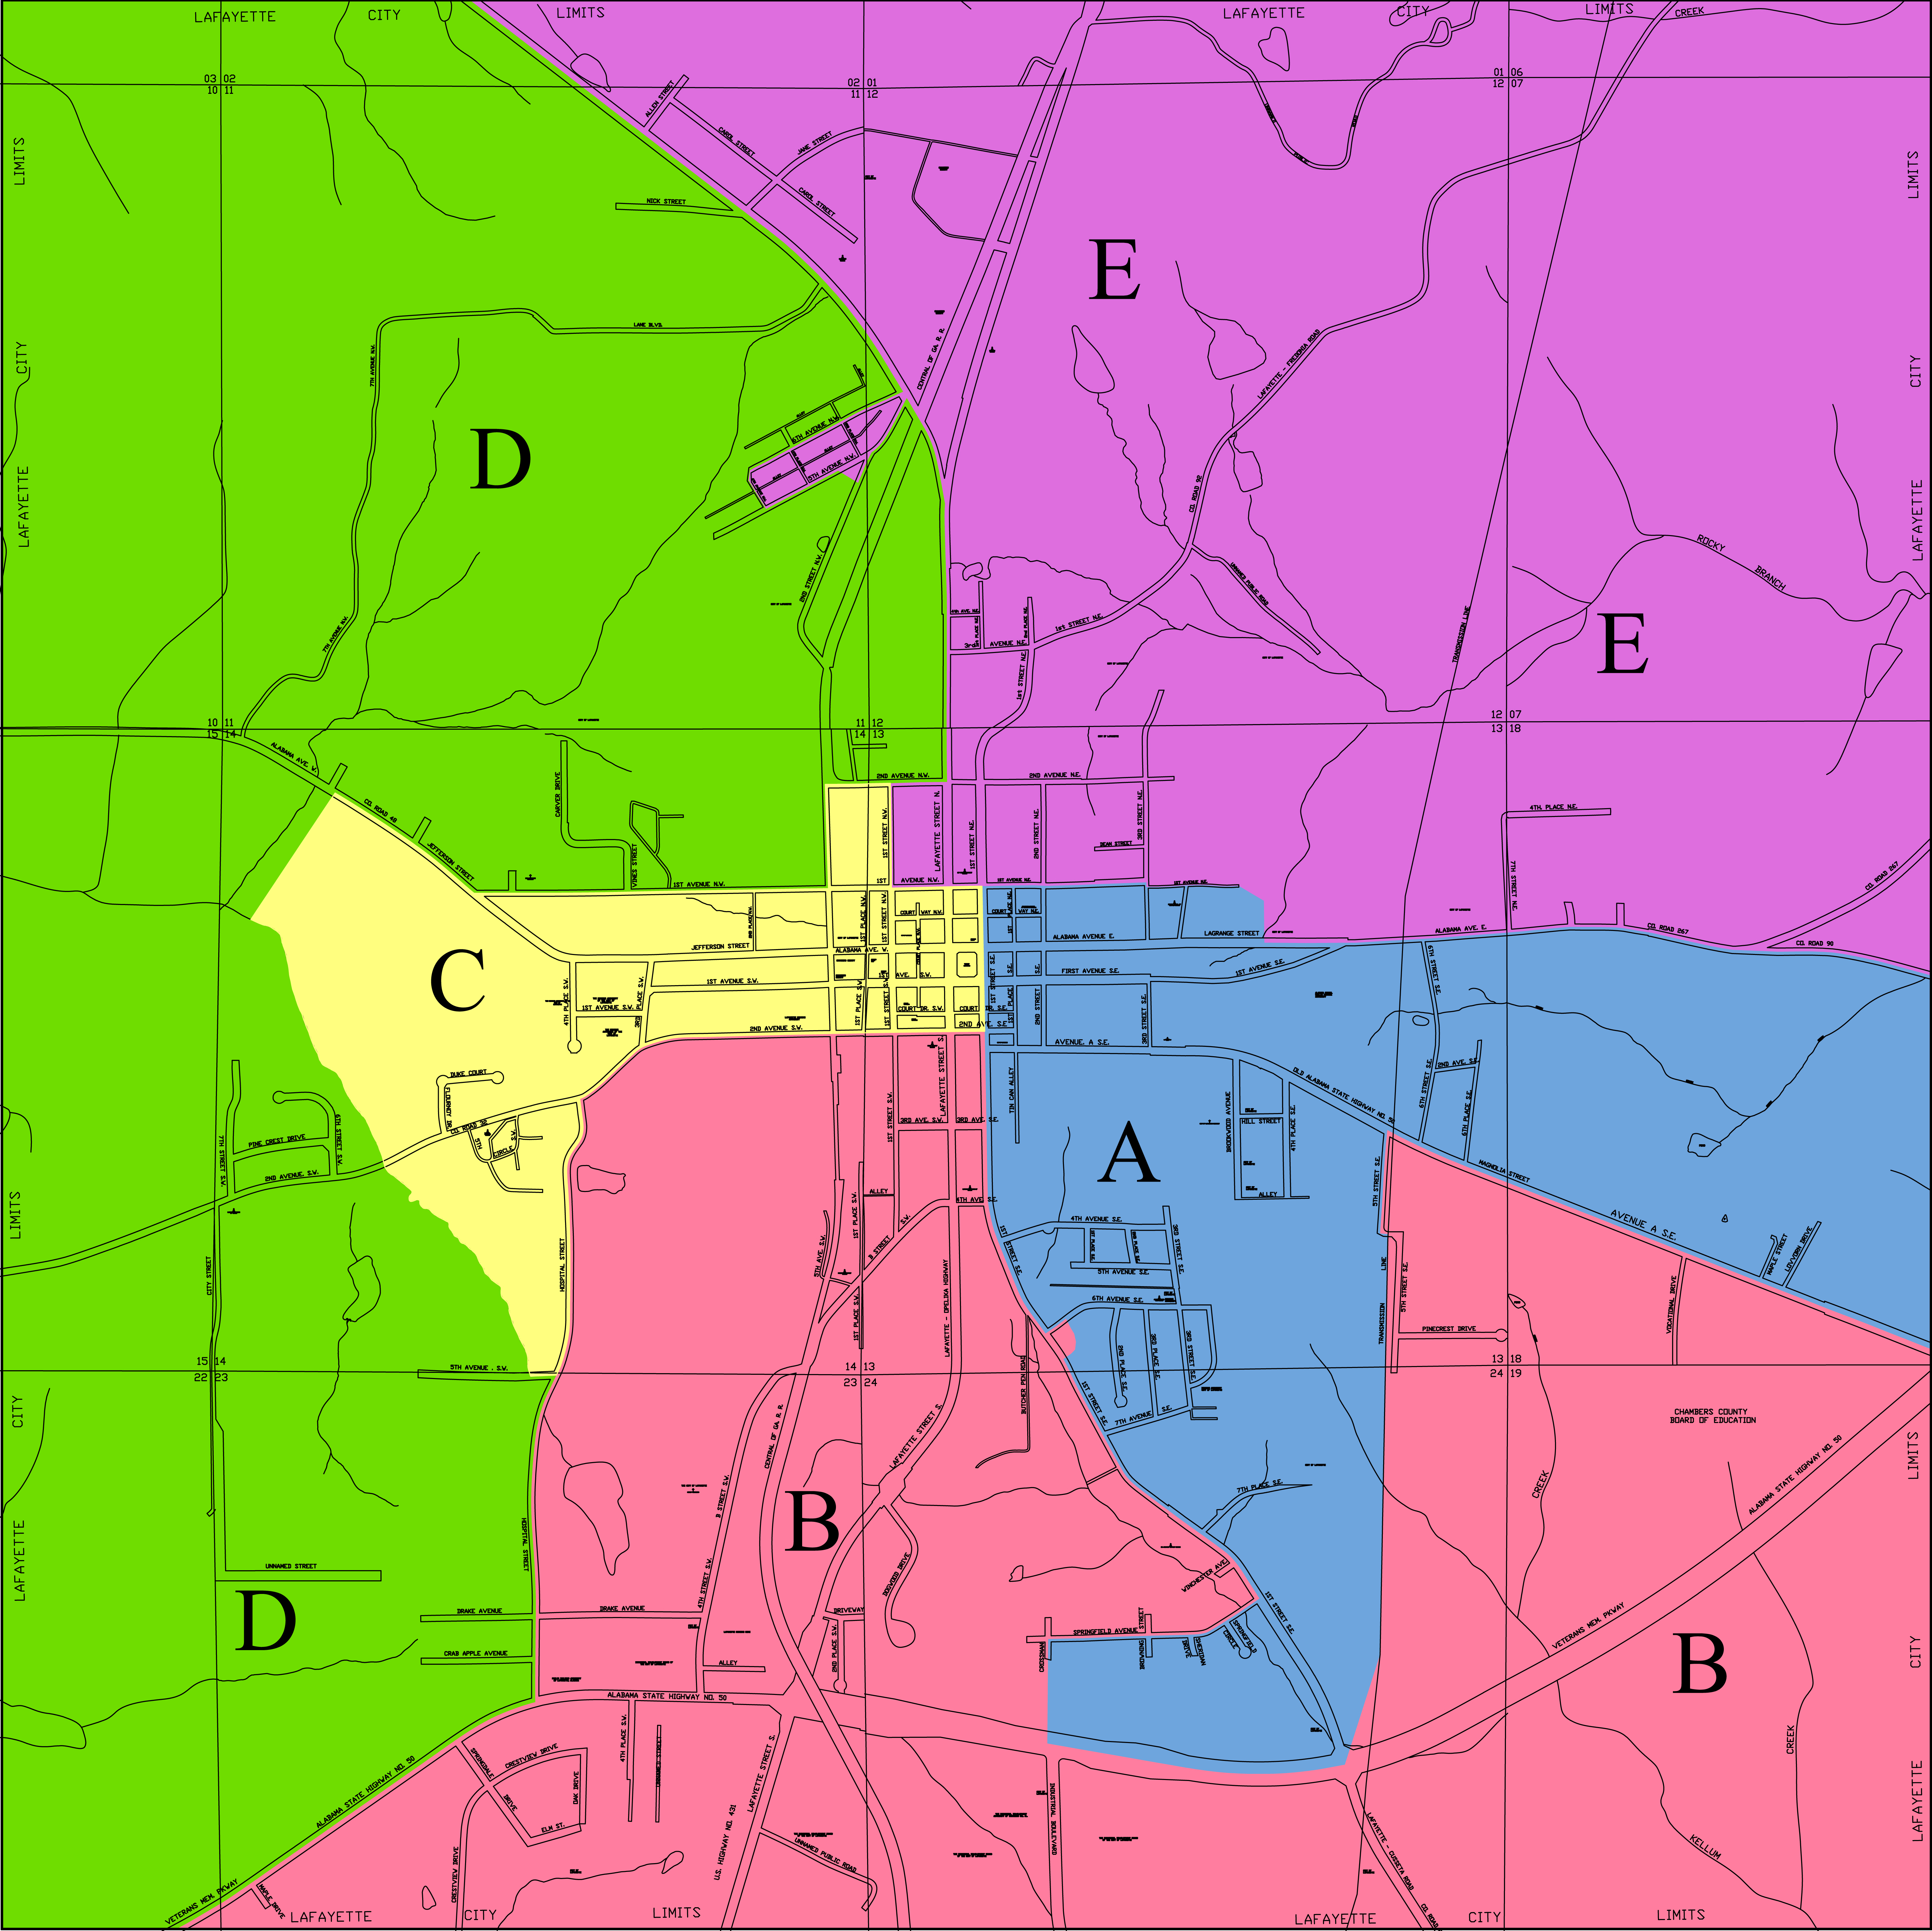 LaFayette Council District Map